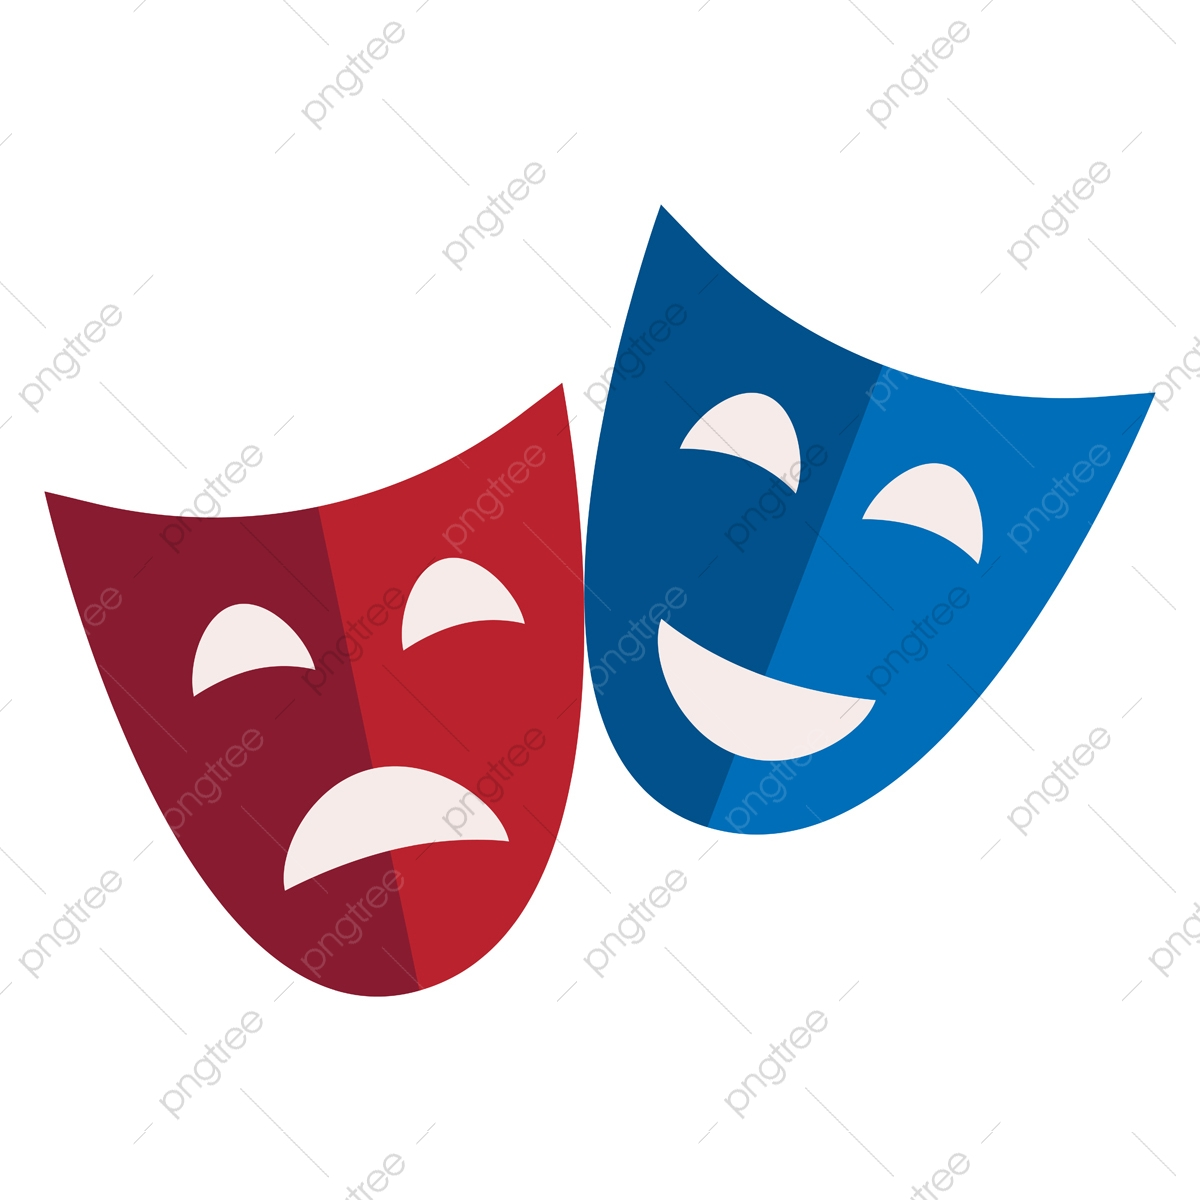 tragedy png images vector and psd files free download on pngtree https pngtree com freepng comedy and tragic mask of red and blue color used in theatres ve 5279977 html